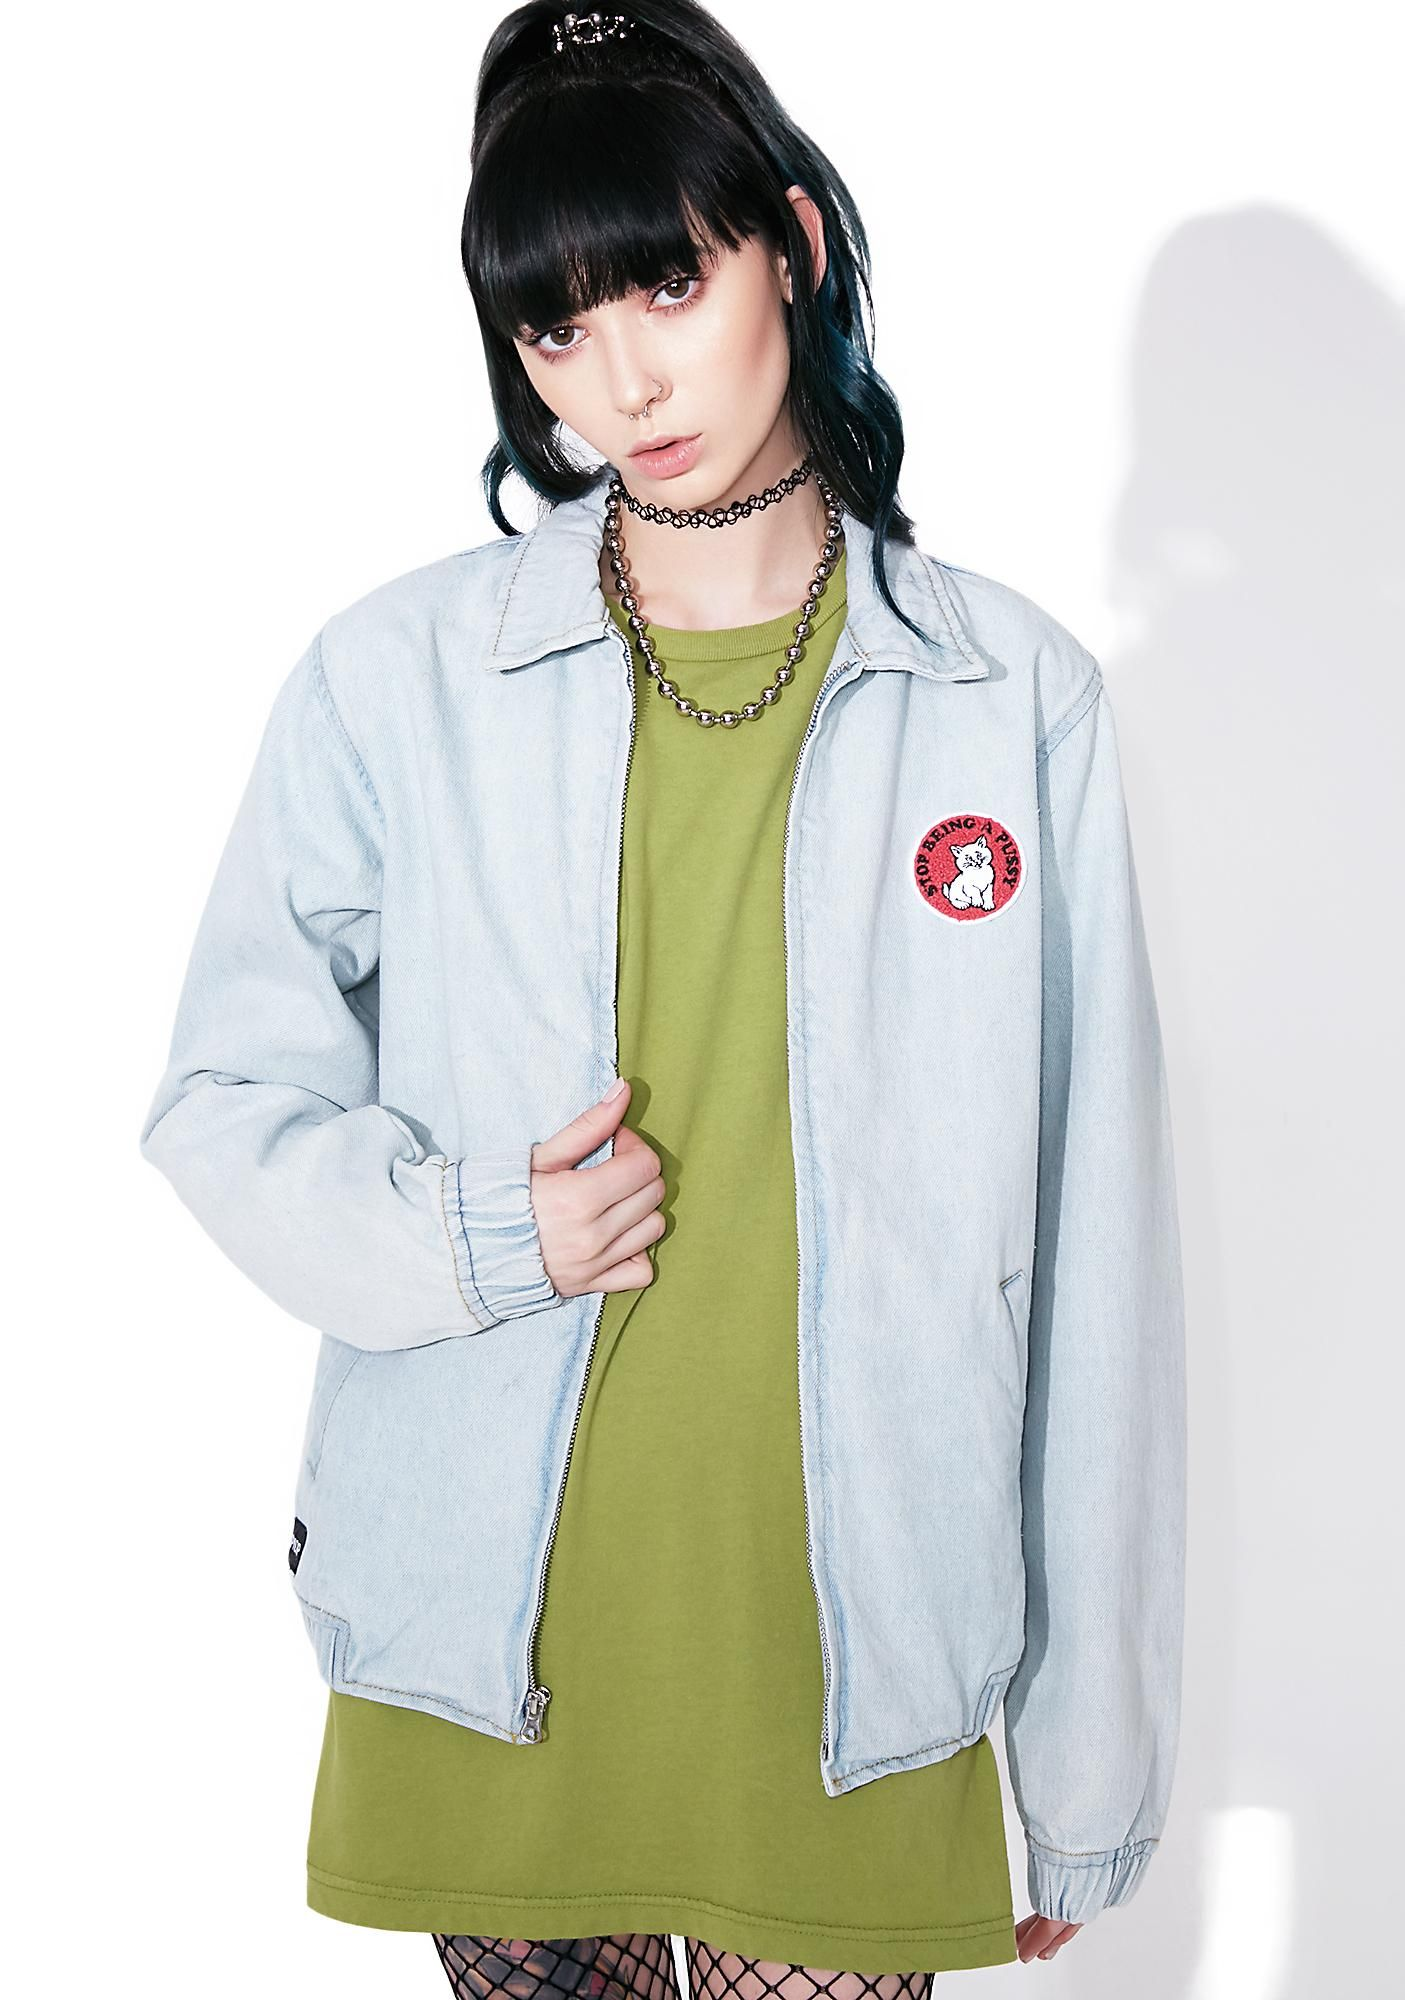 RIPNDIP Stop Being A Pussy Denim Jacket cuz yer no scaredy cat, bb. This sik denim jacket features a light cotton construction with a purrfect relaxed fit, elastic cuffs and cinched waist, pockets, embroidered patch, and zip front closure.